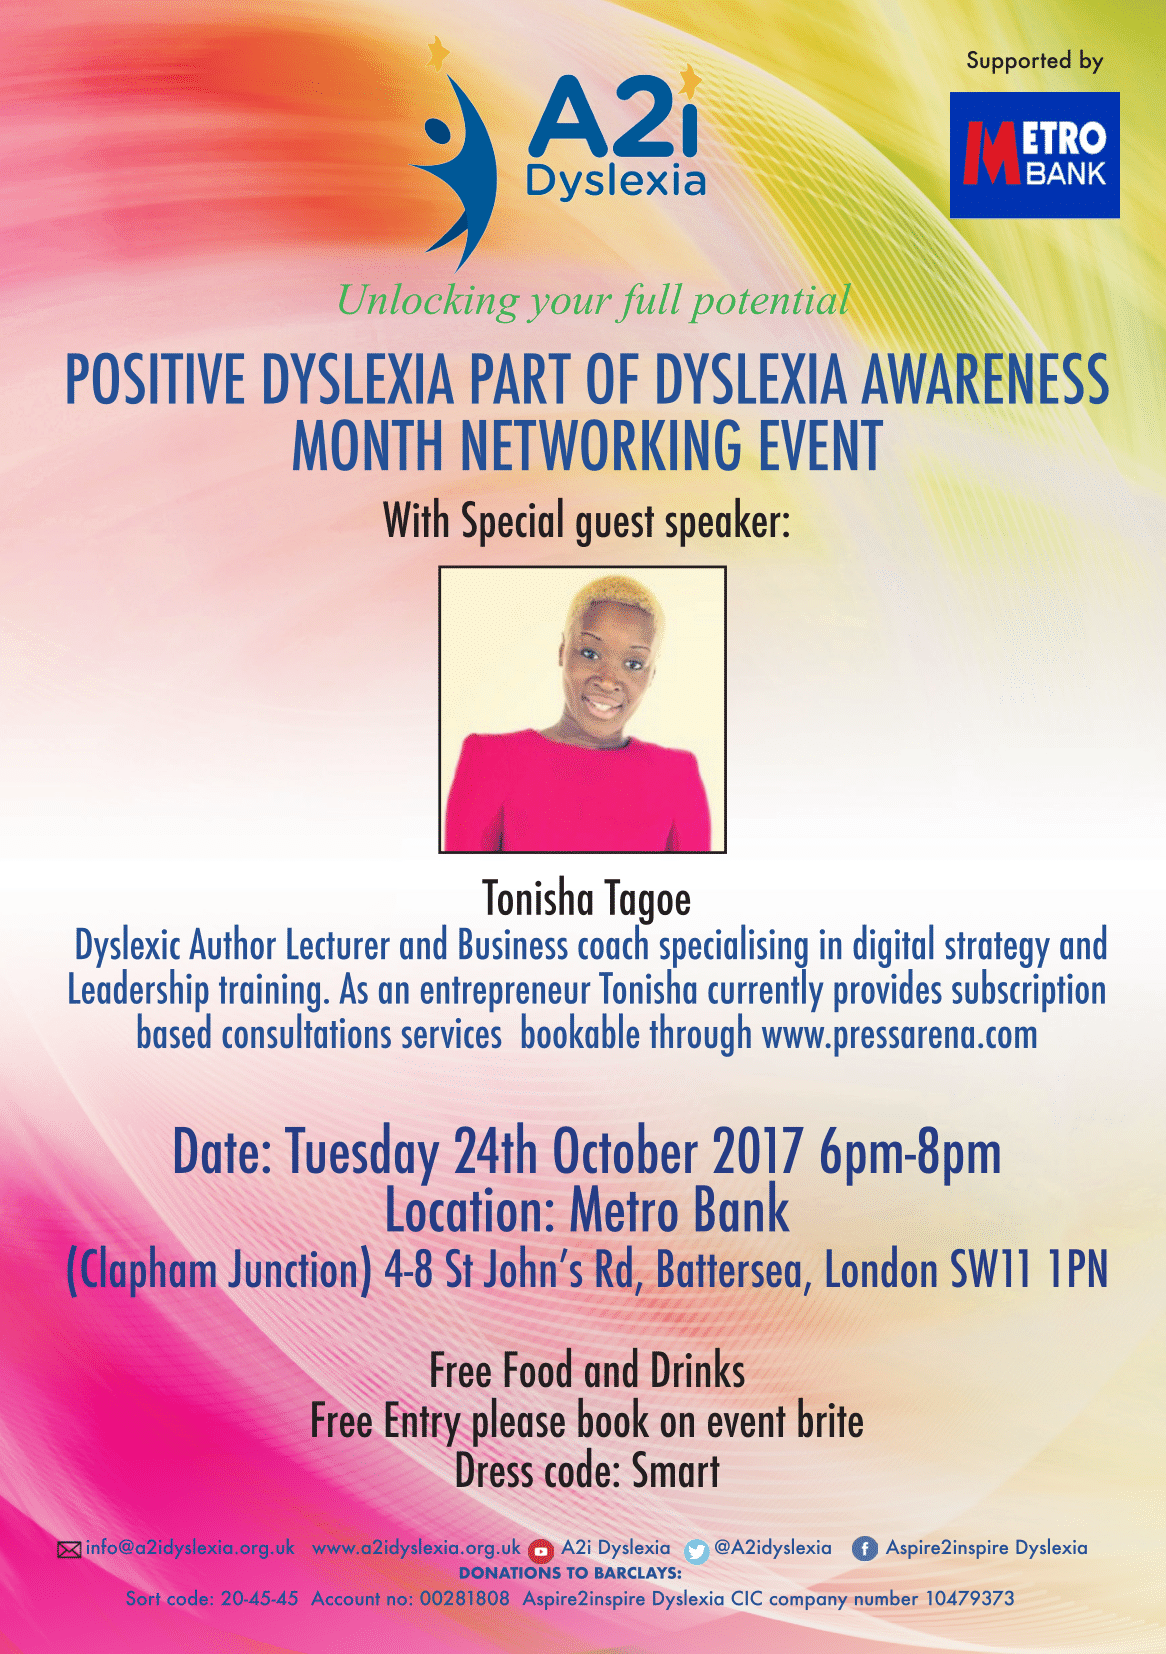 A2i Dyslexia Networking Event